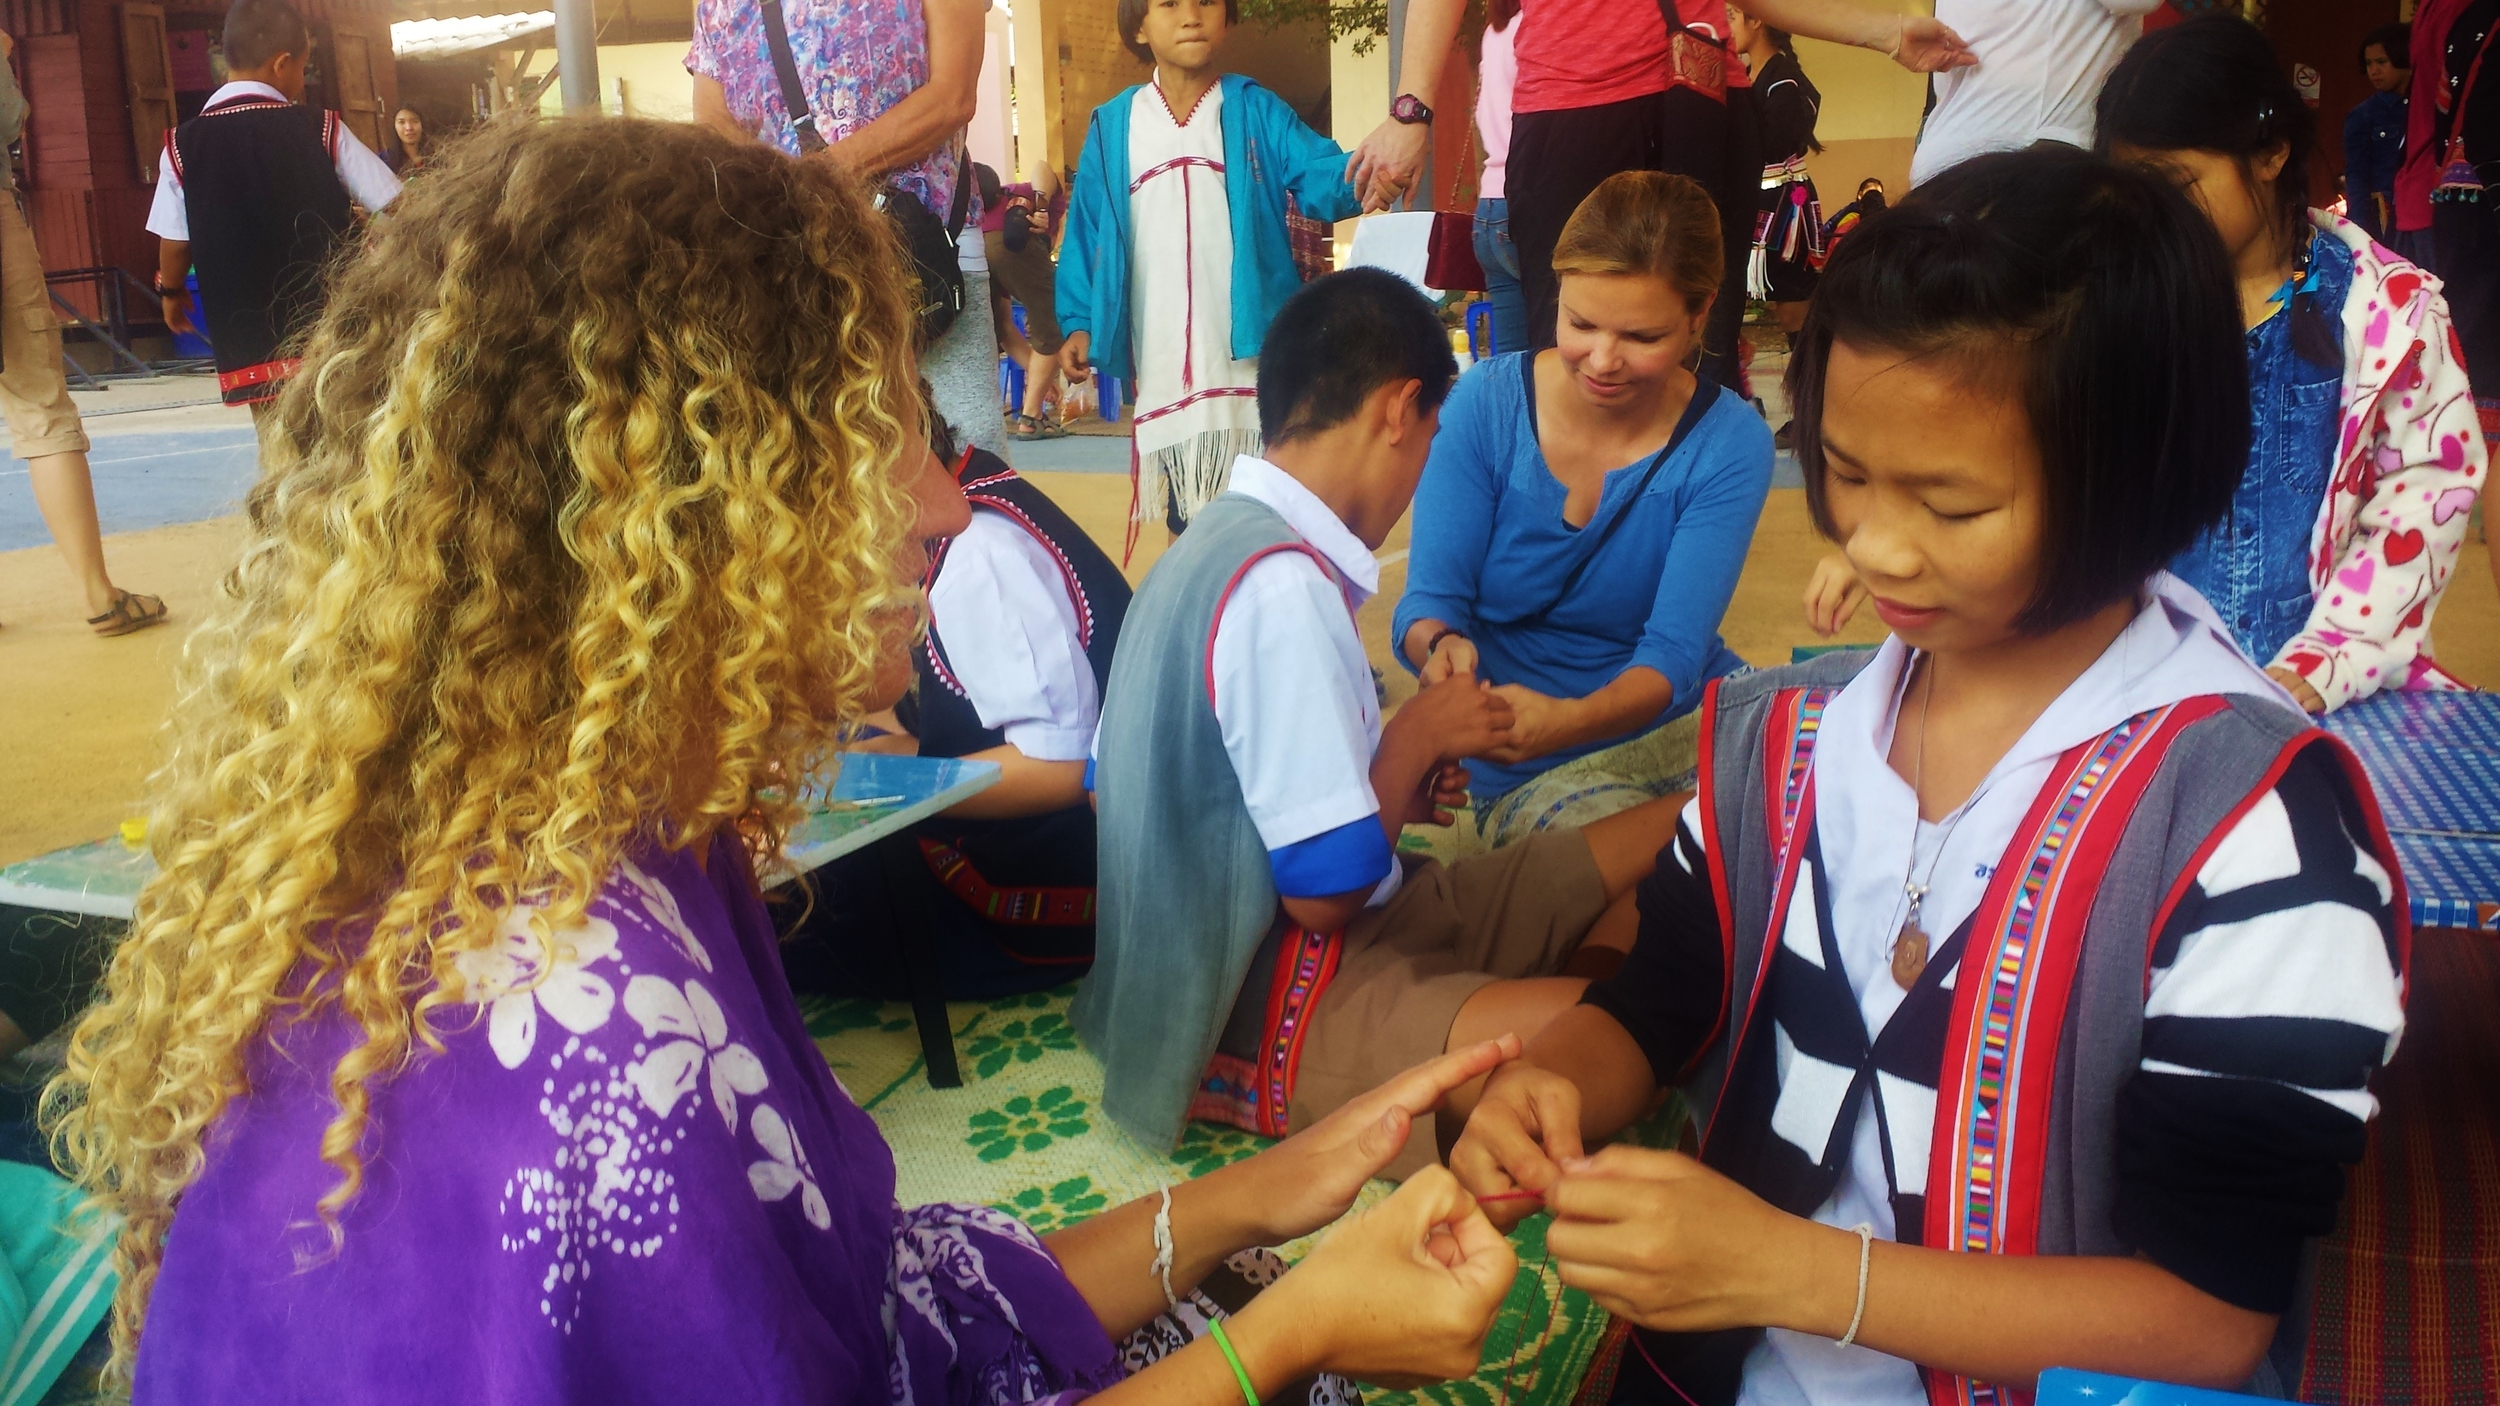 Making bracelets with children from a local Thai school in Chiang Mai